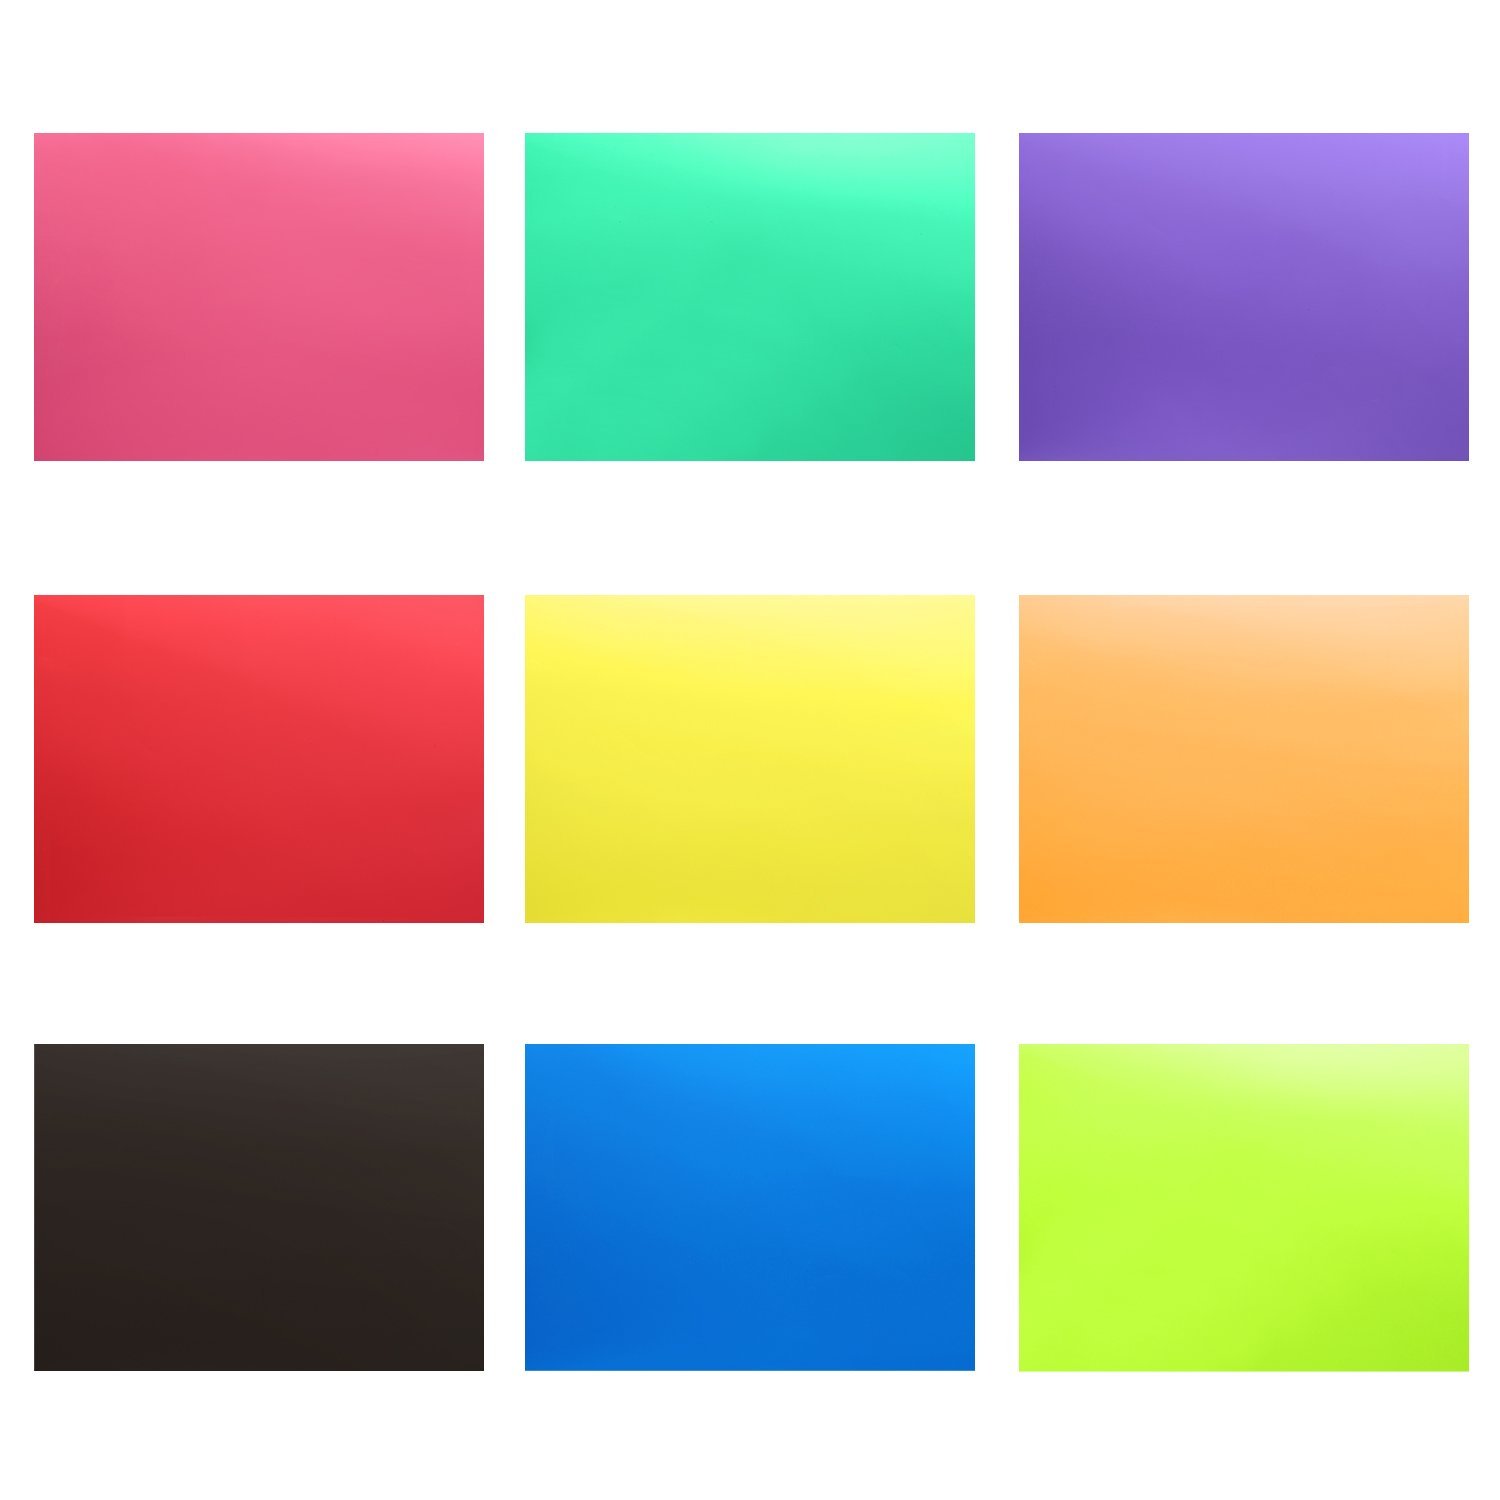 neewer 9 pieces flash lighting gel filter kit with 9 different colors 12x8 3 inches 30x21 cm transparent color correction lighting film plastic